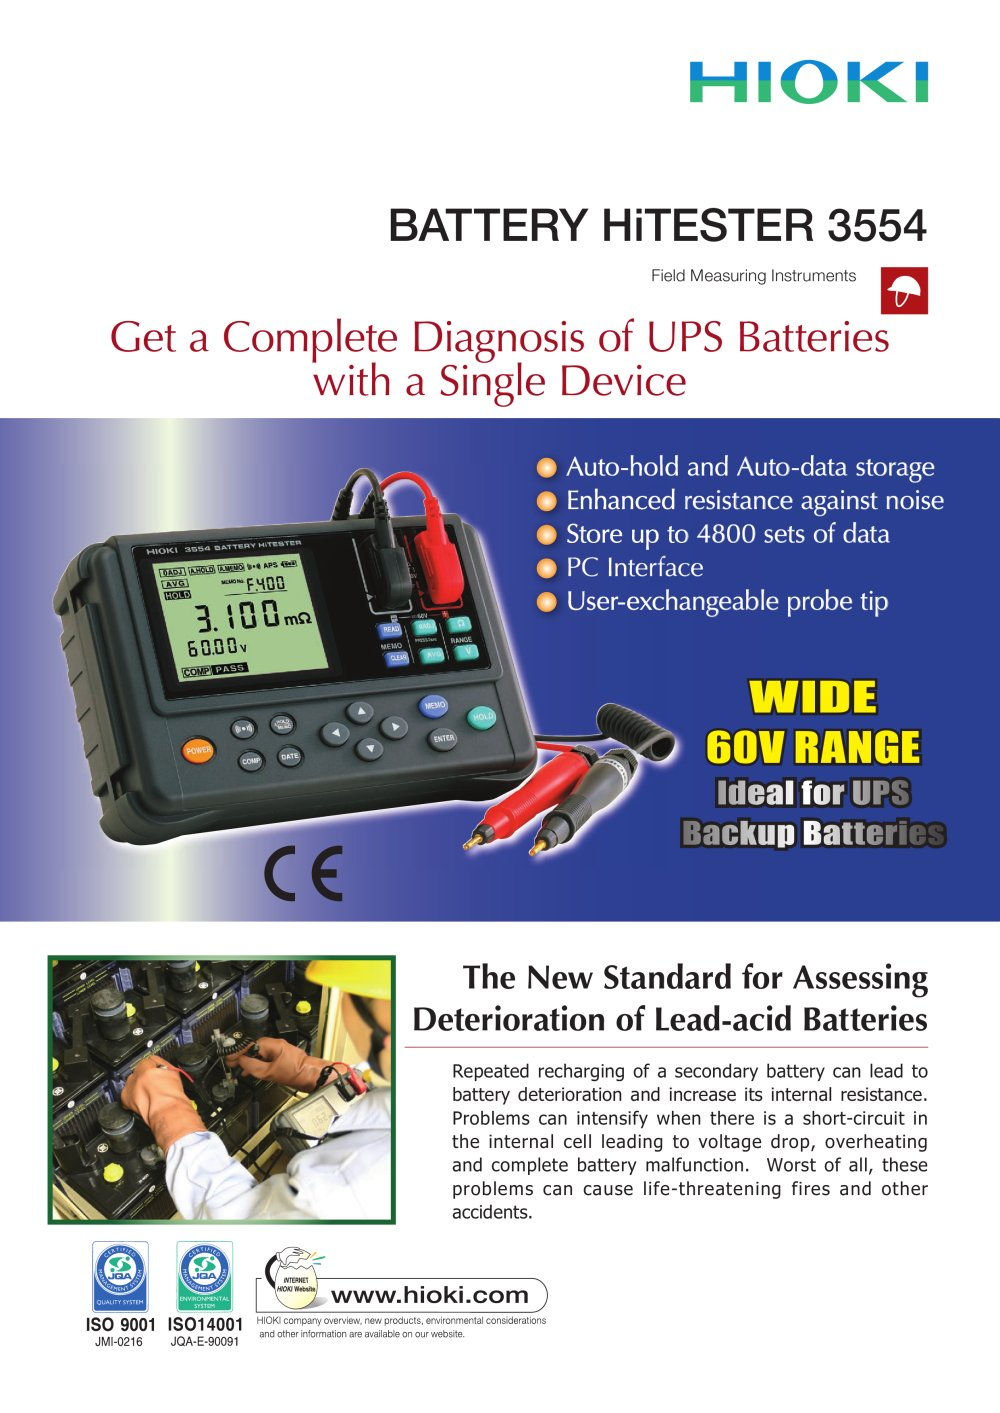 HIOKI 3554 BATTERY HiTESTER - 1 / 4 Pages